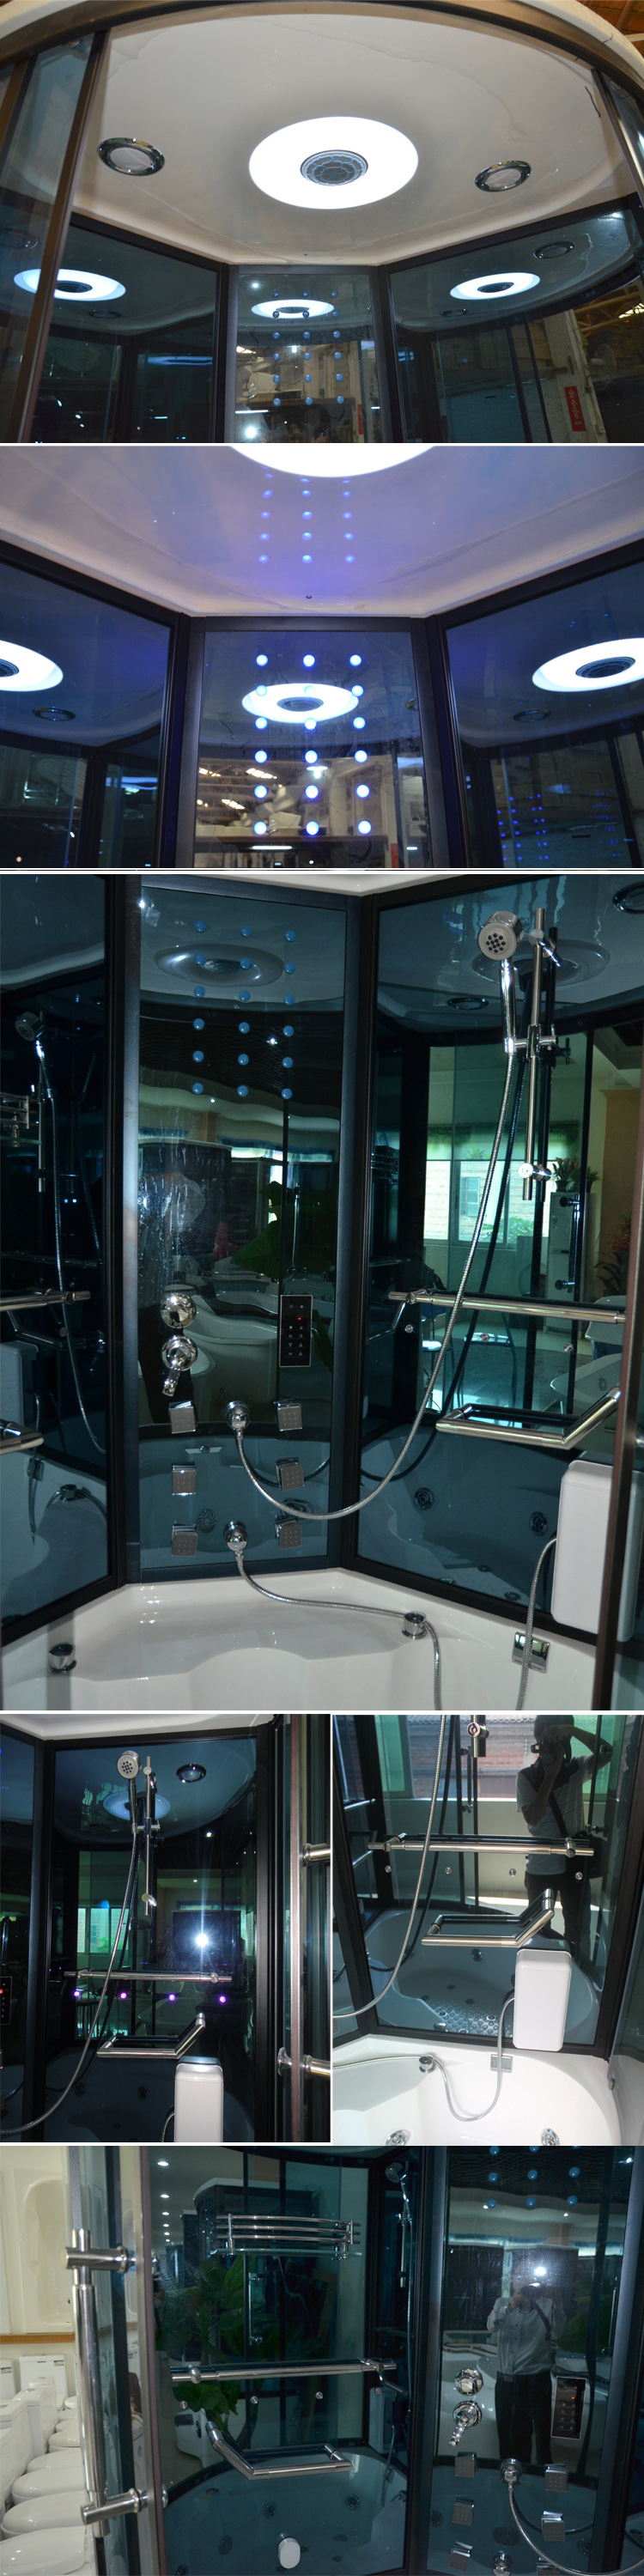 HS SR085 Acrylic Aqua Glass Bath Steam Shower